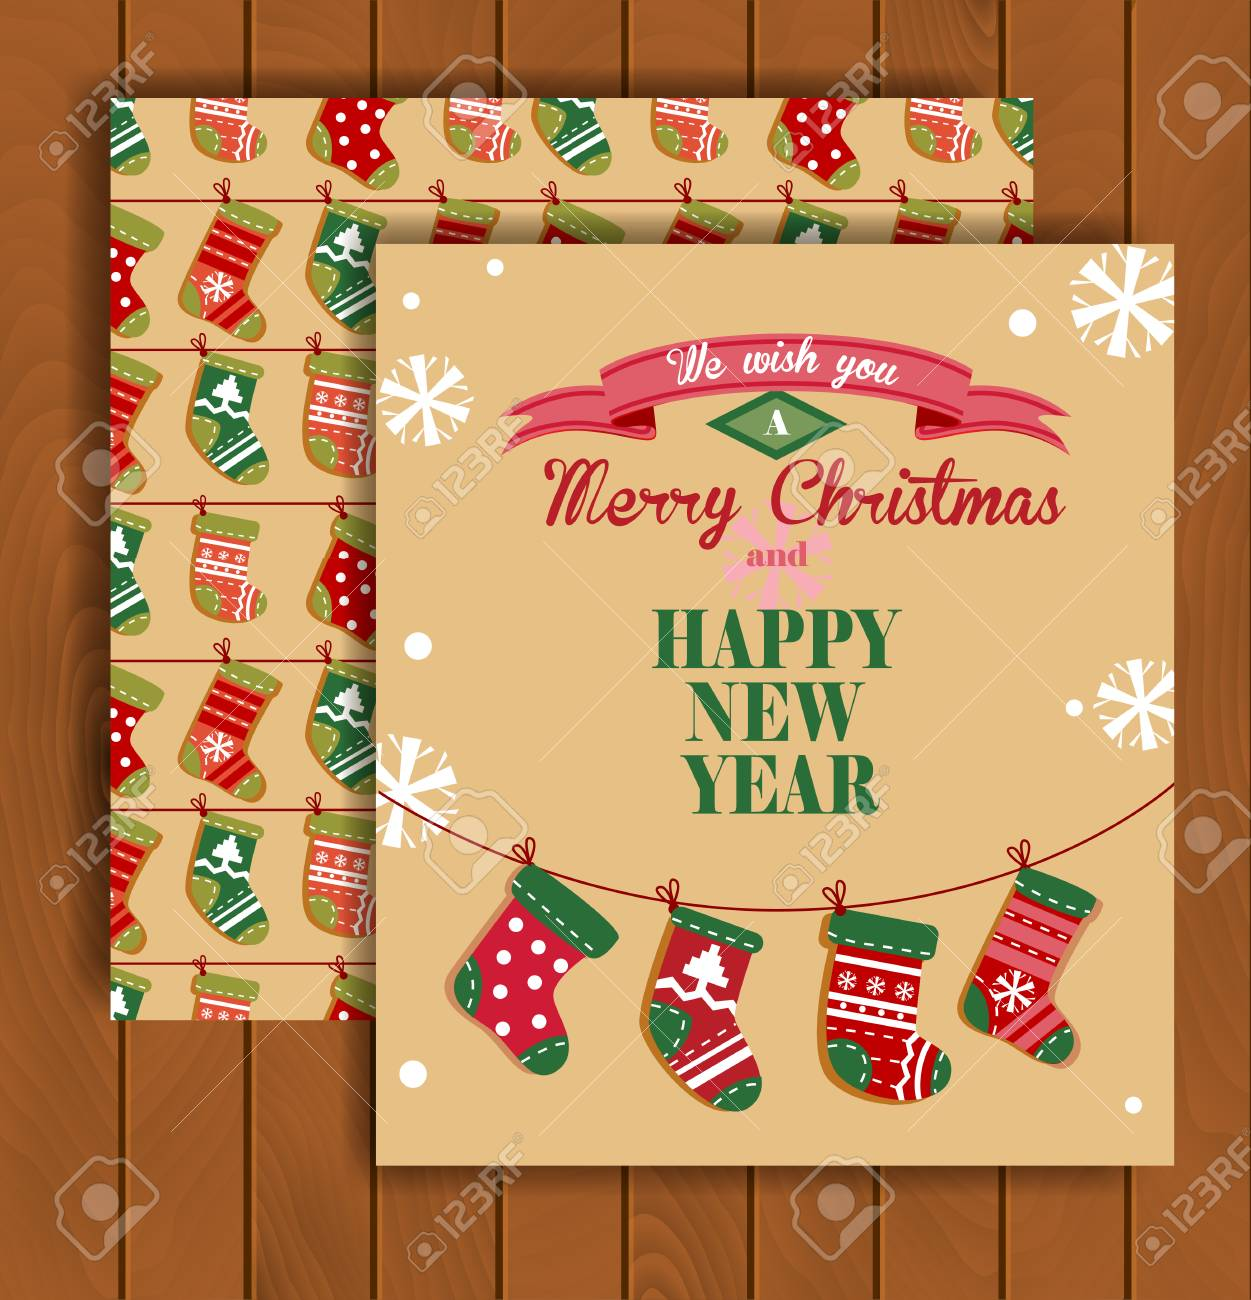 Cute Christmas Greeting Card With An Envelope The Socks Hanging